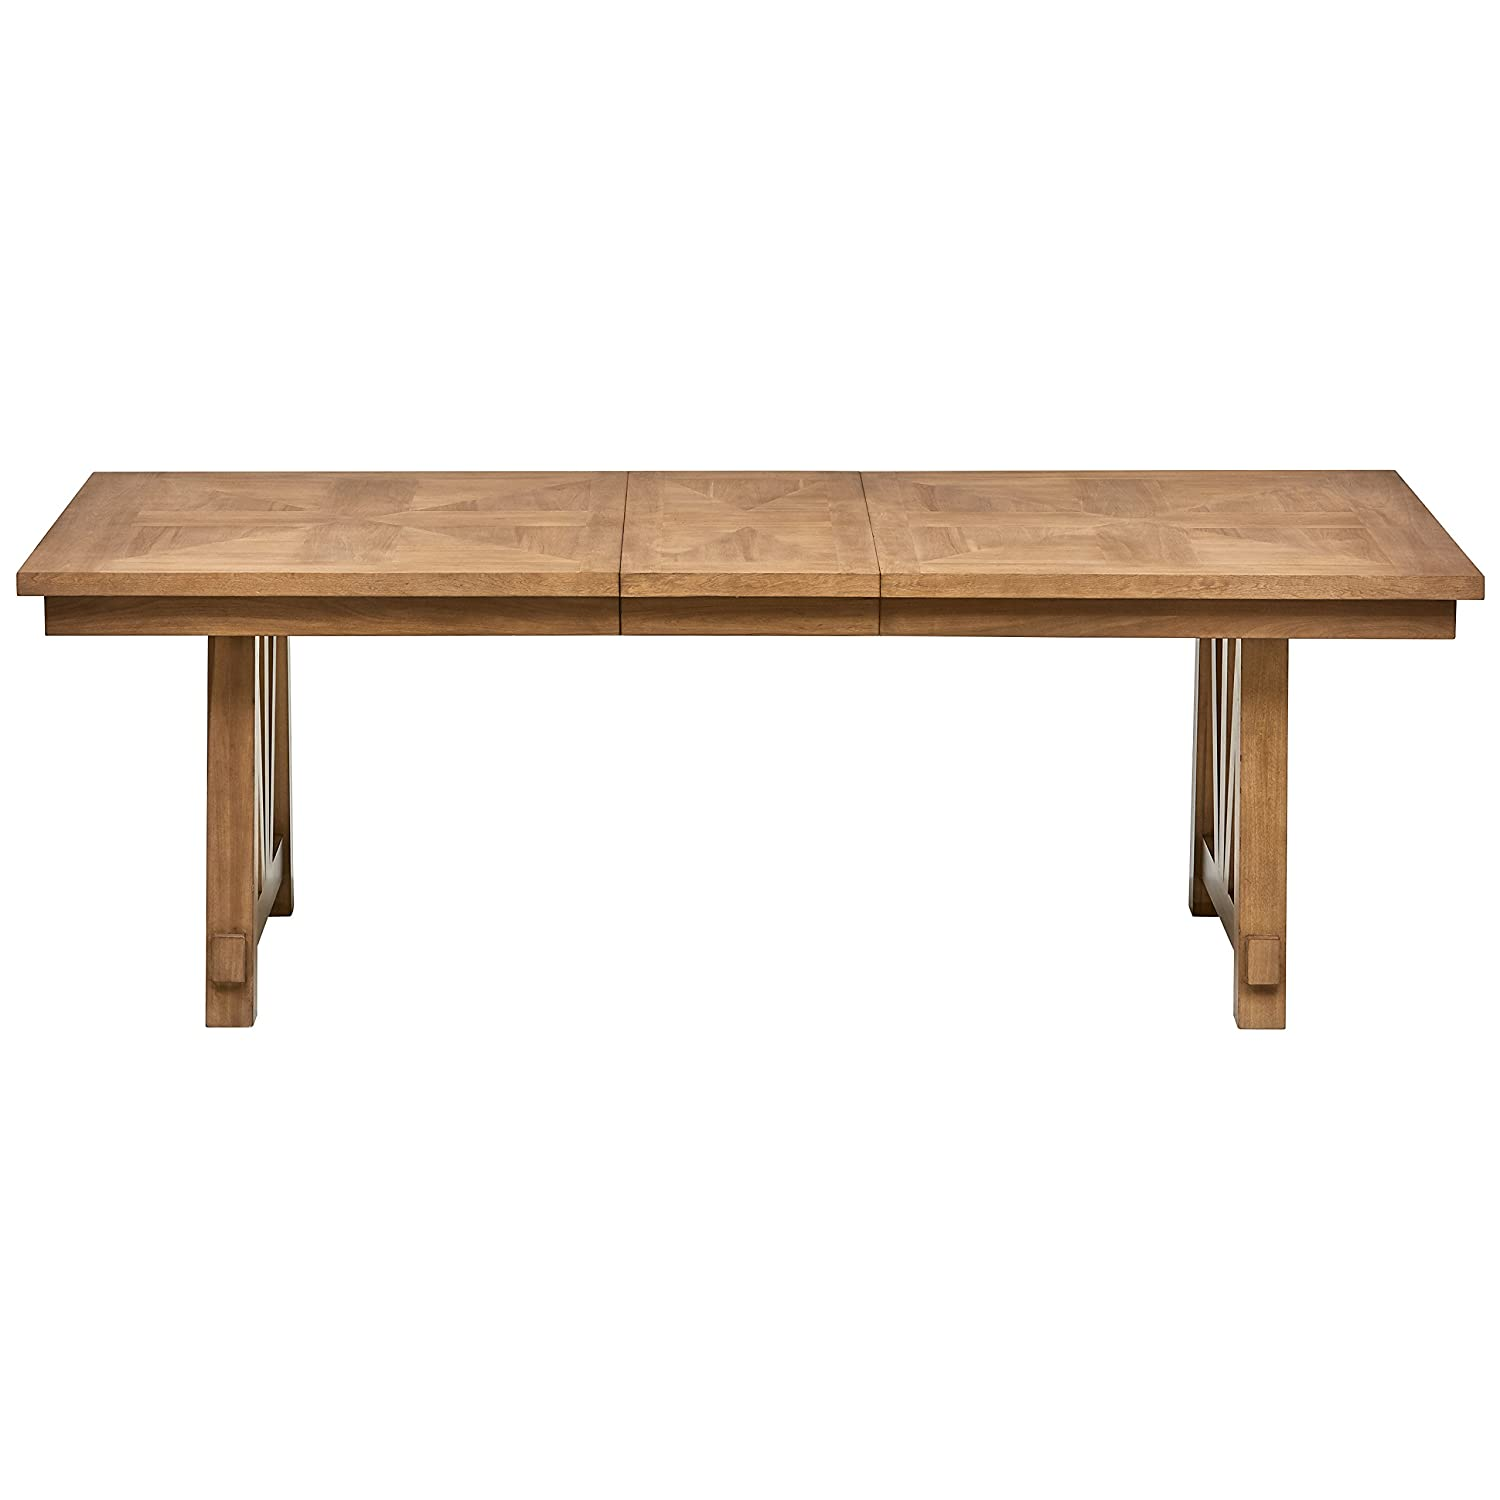 Stone Beam Jon Casual Farmhouse Expandable Wood Dining Table, 90 W, Birch